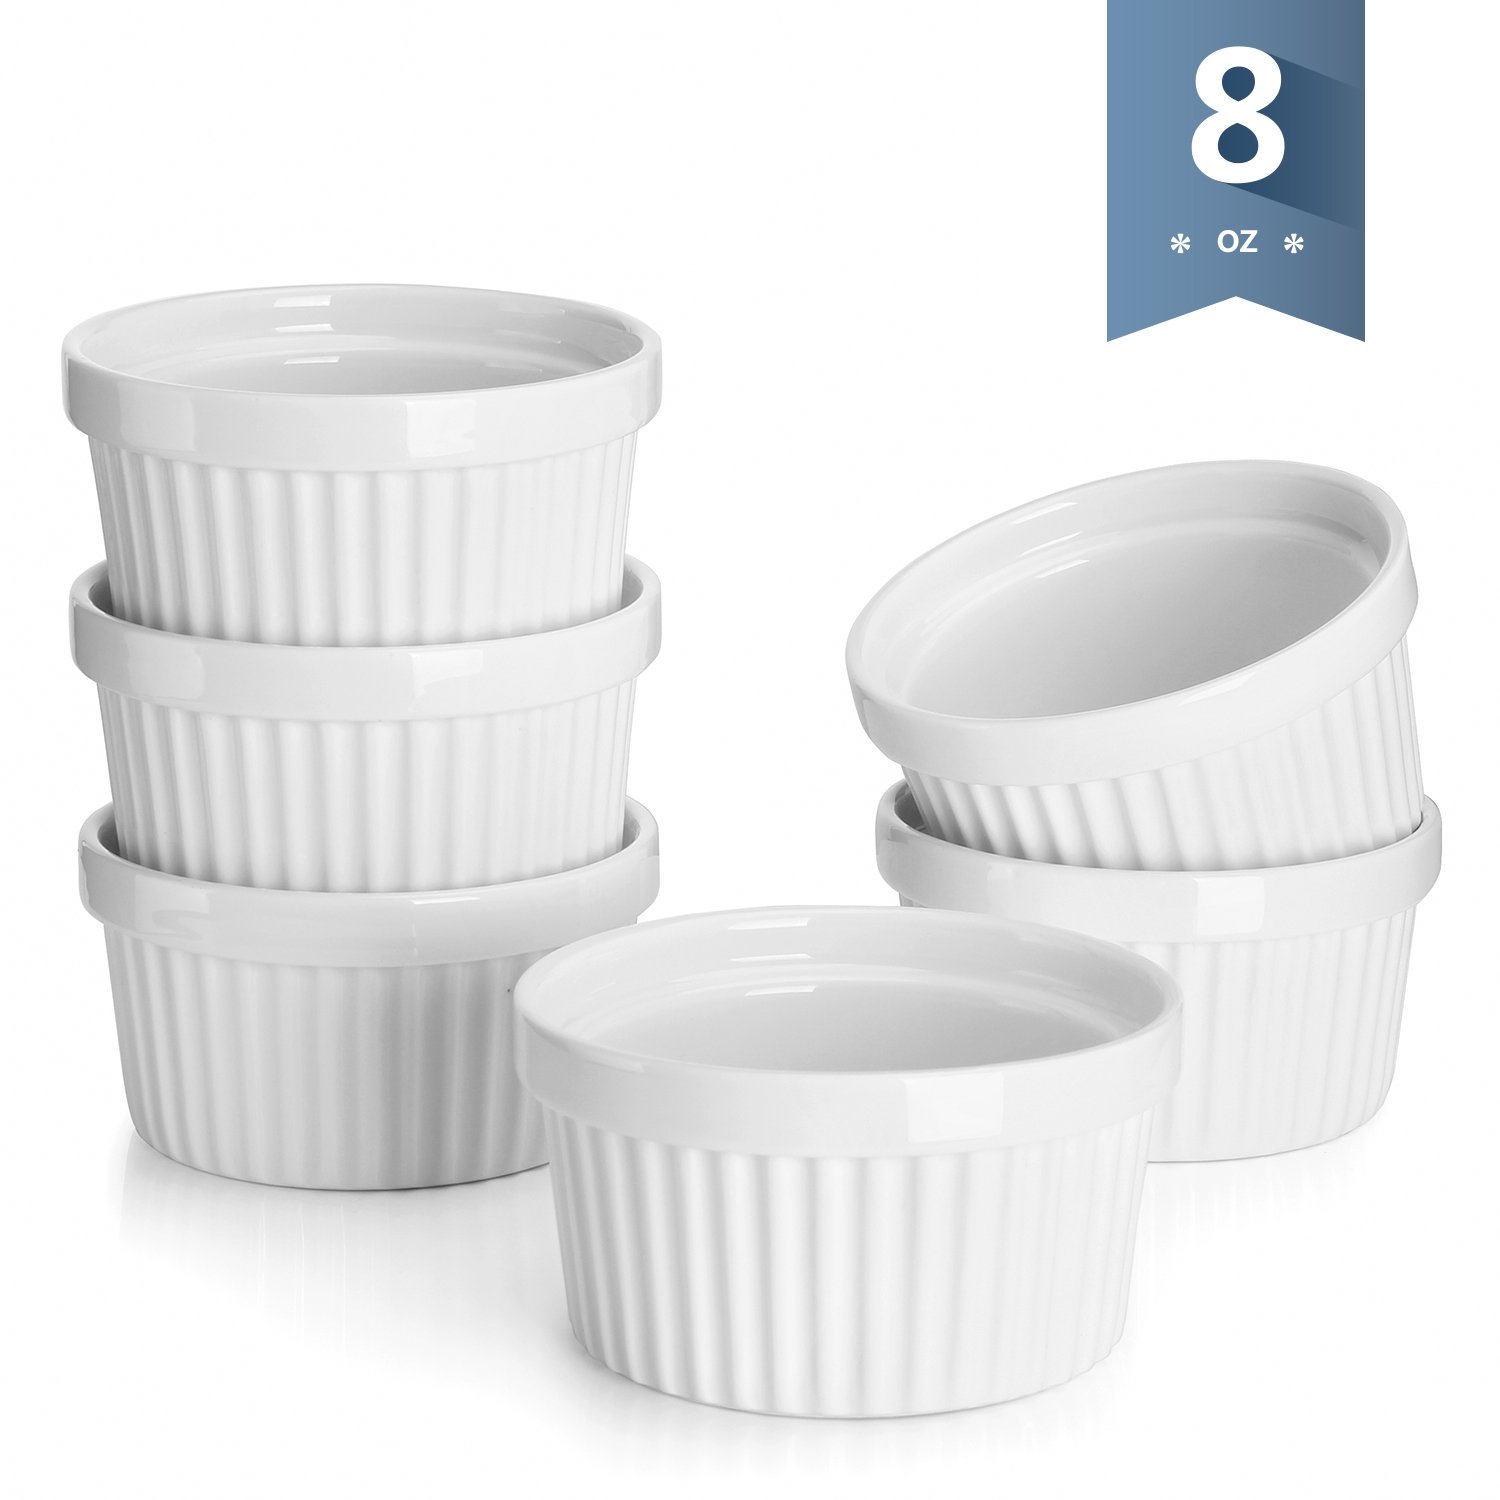 Sweese 5105 Porcelain Souffle Dishes, Ramekins - 8 Ounce for Souffle, Creme Brulee and Ice Cream - Set of 6, White